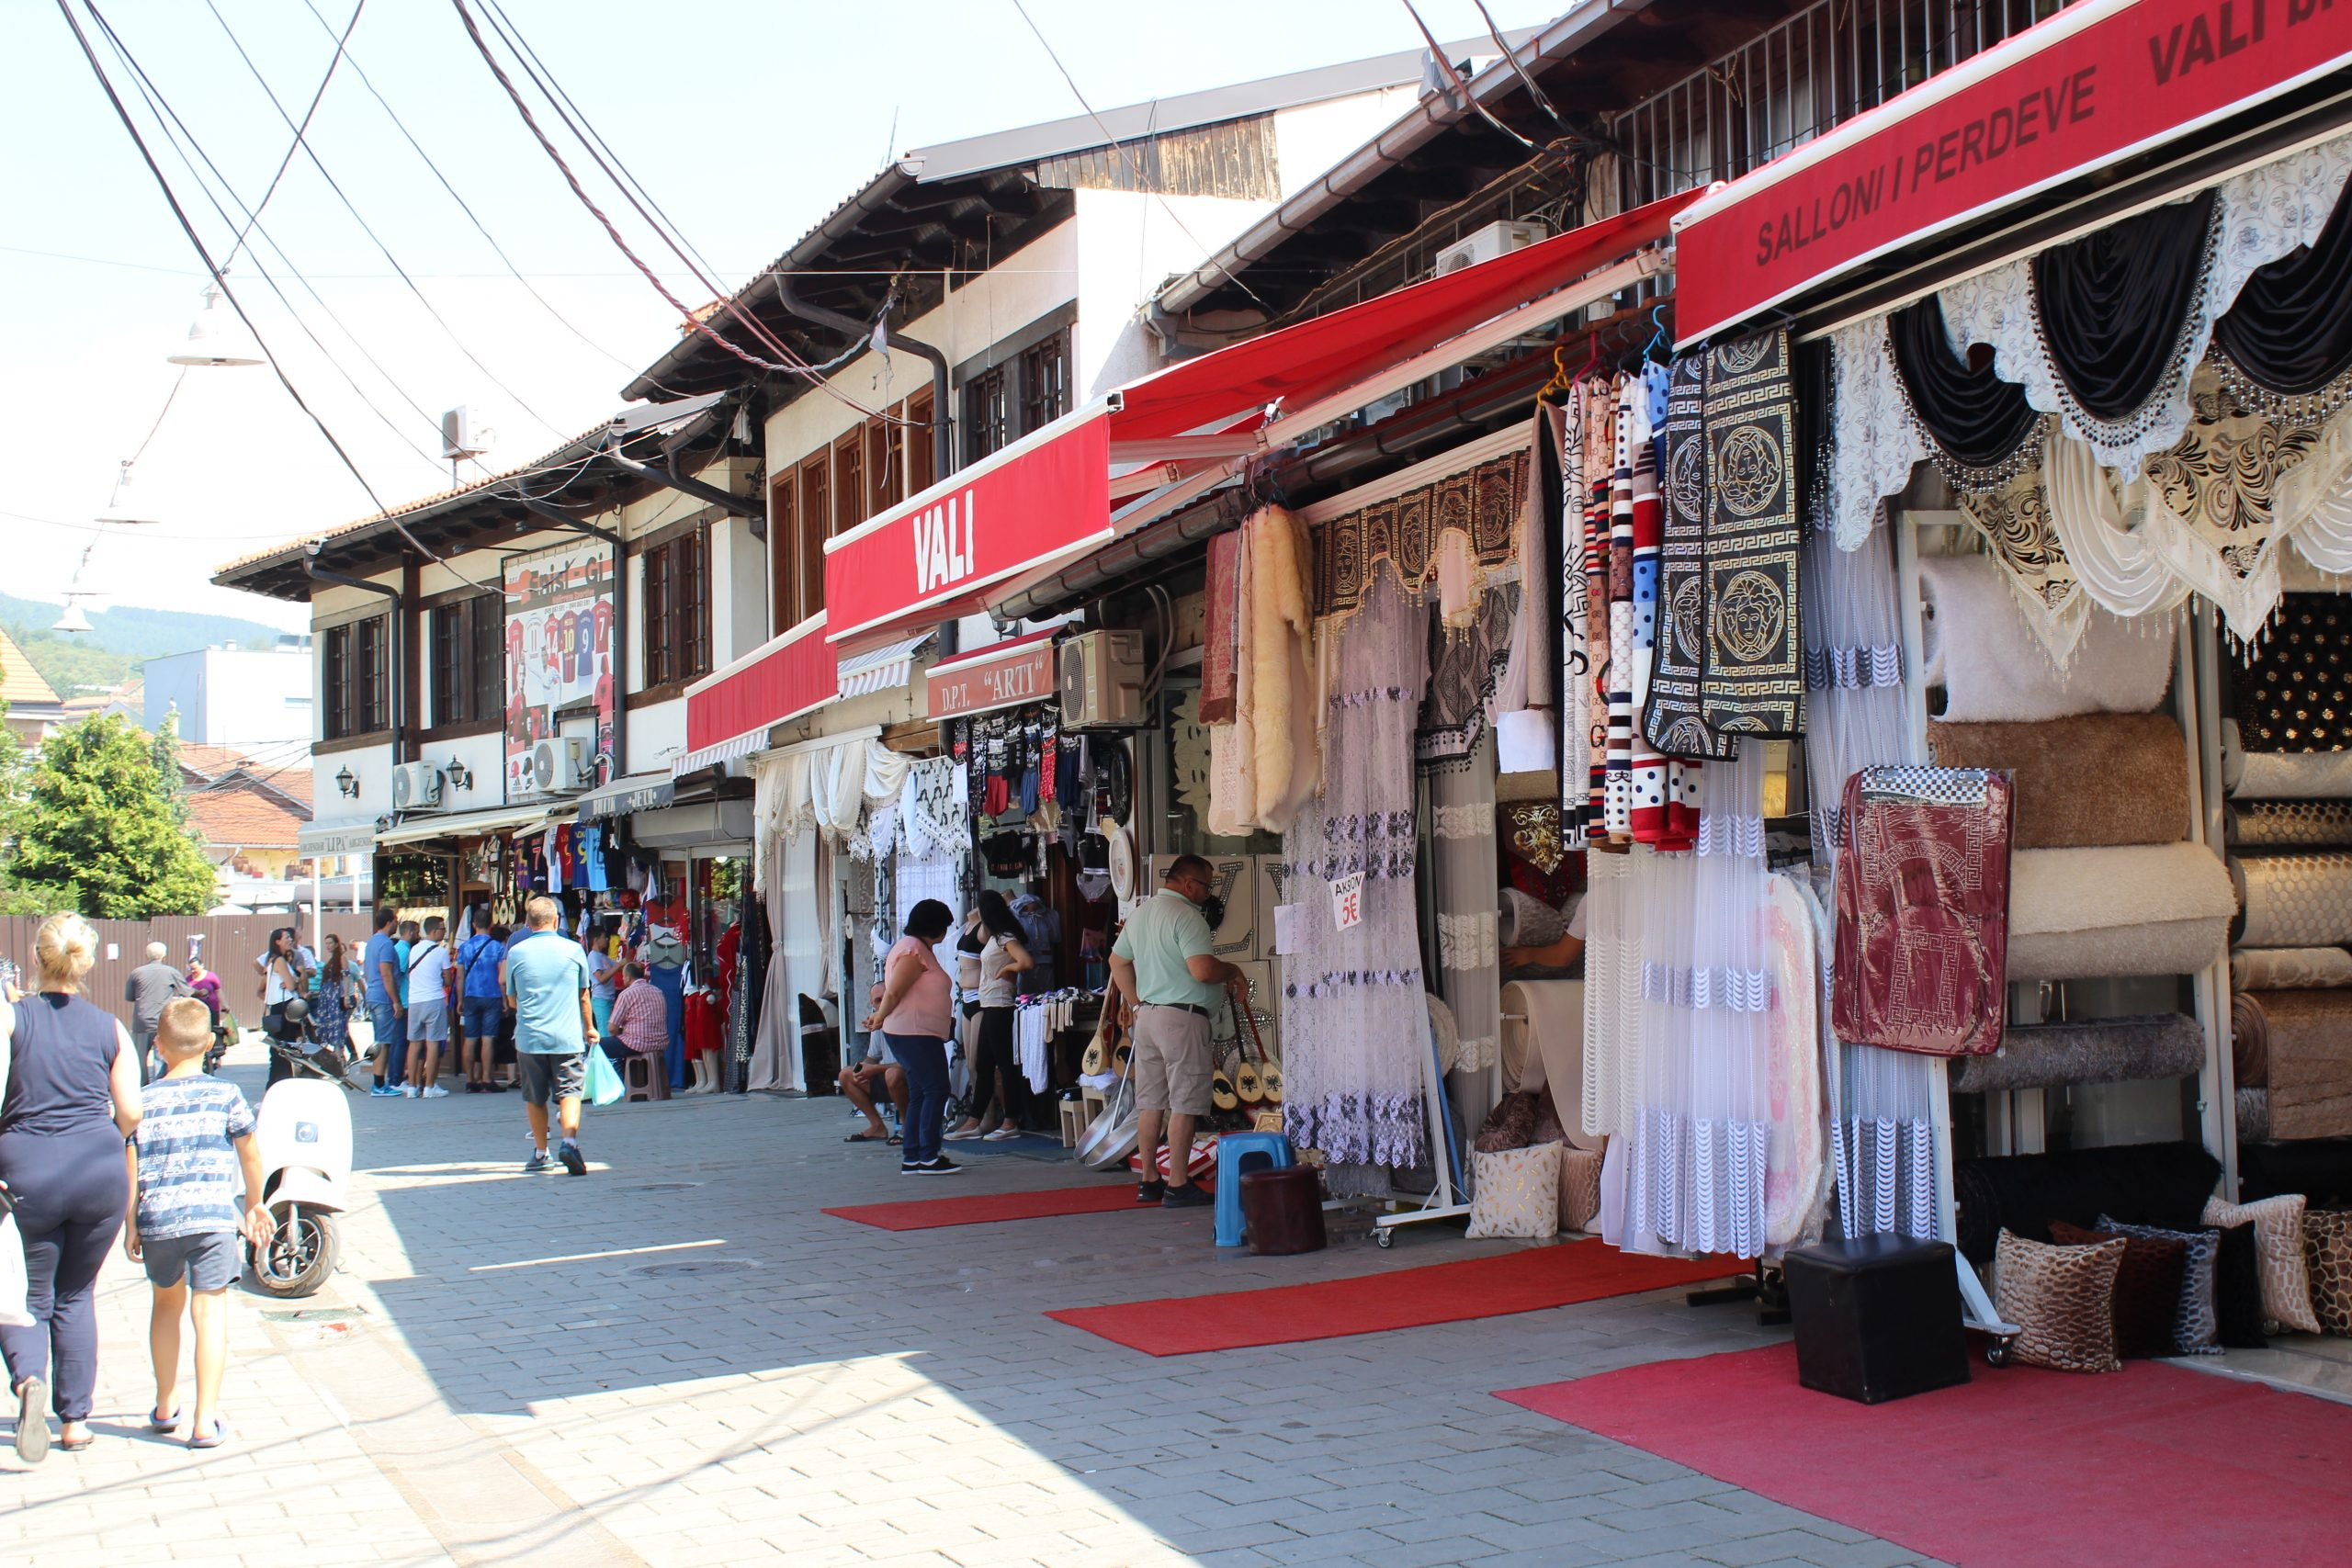 Diffrents stores_in_the_old_bazaar_of_Peja